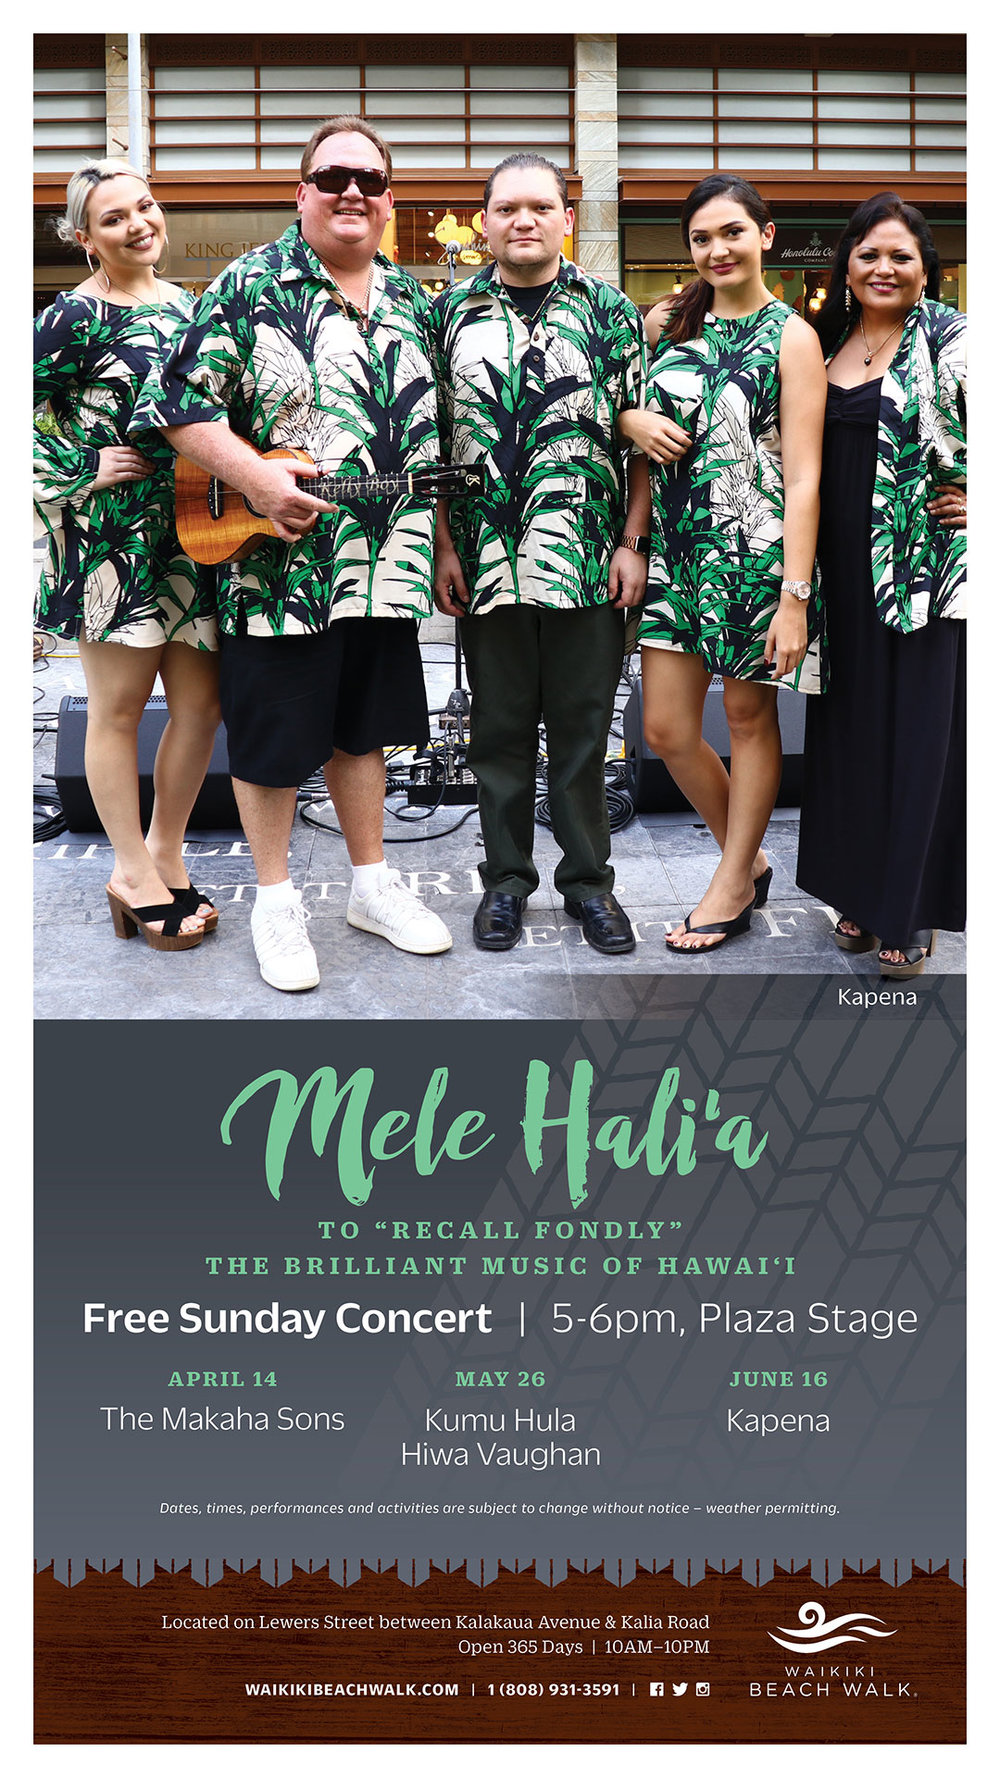 07b25b9456c7 Mele Hali'a Hawaiian Musical Series at the Waikiki Beach Walk featuring  Kapena